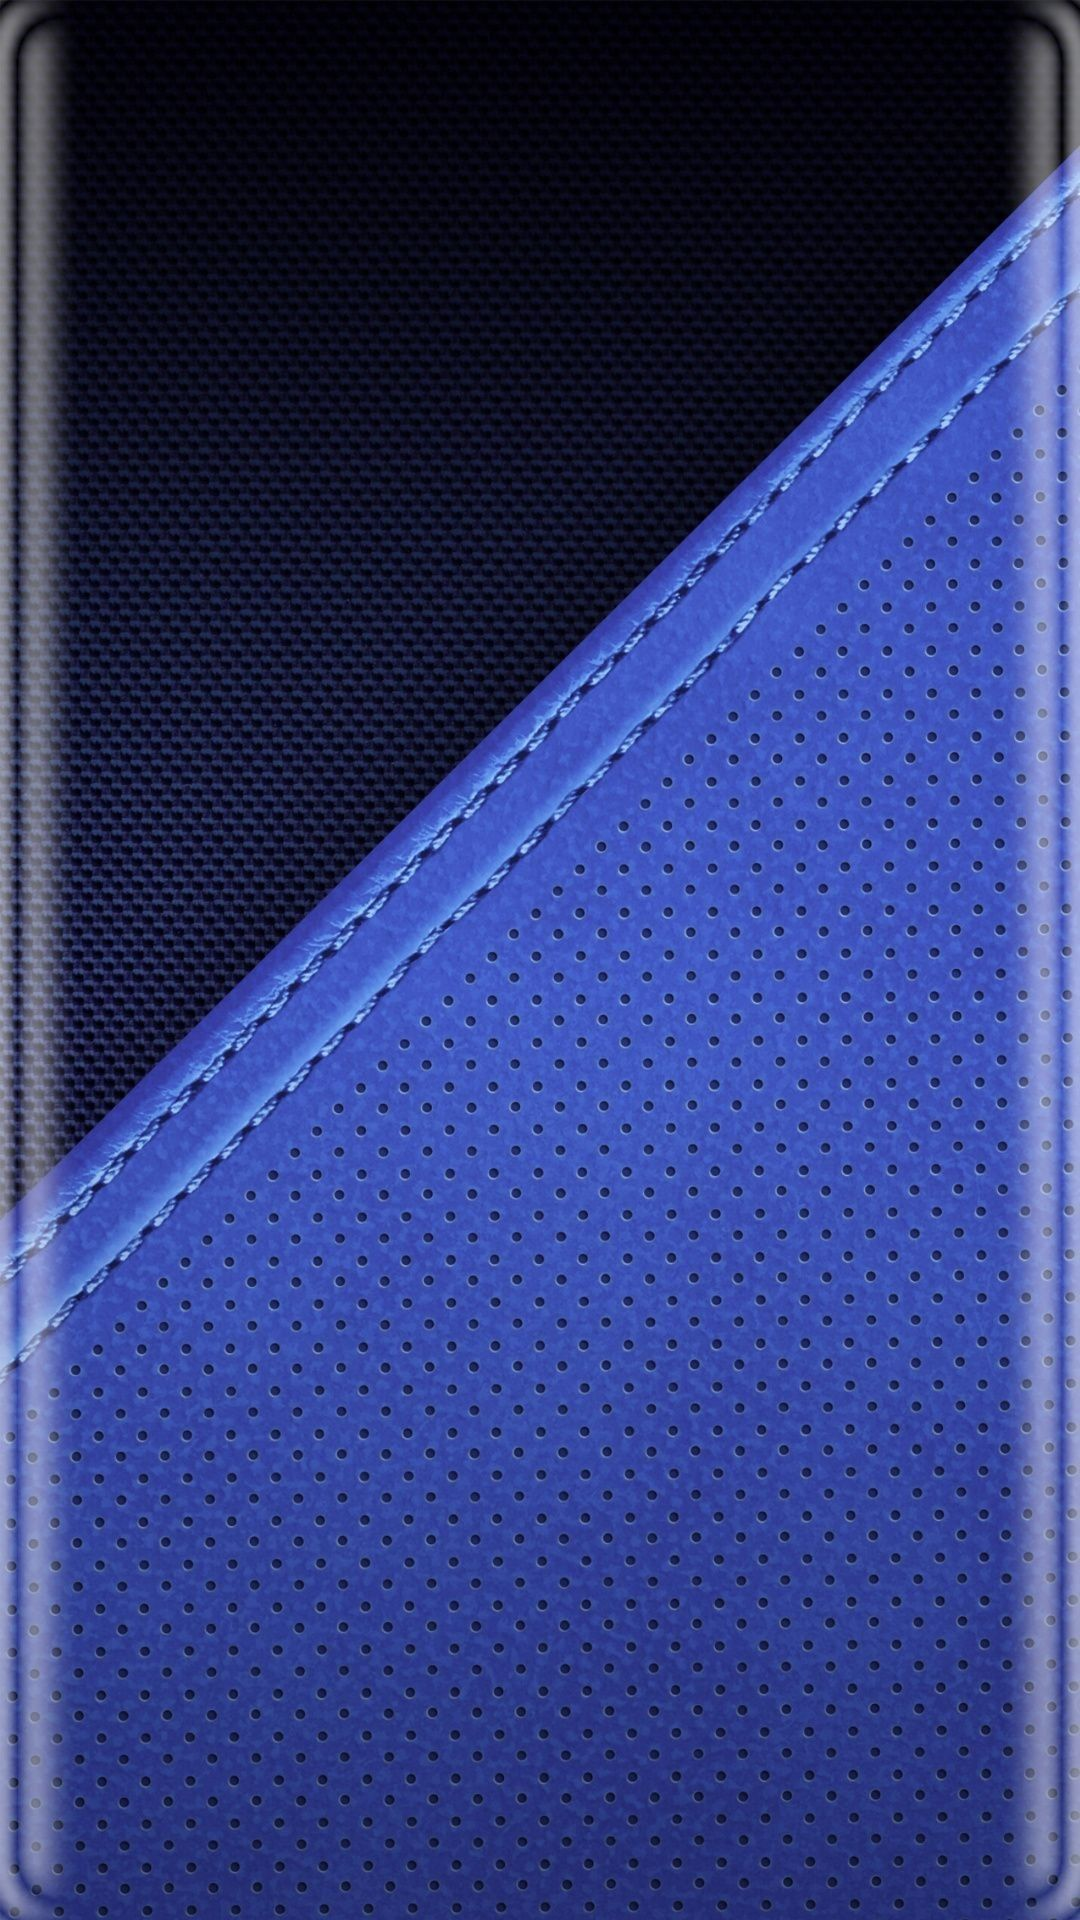 Pin by Anton Dobrev on Note 8 and Galaxy S8 Wallpapers in 2019 1080x1920